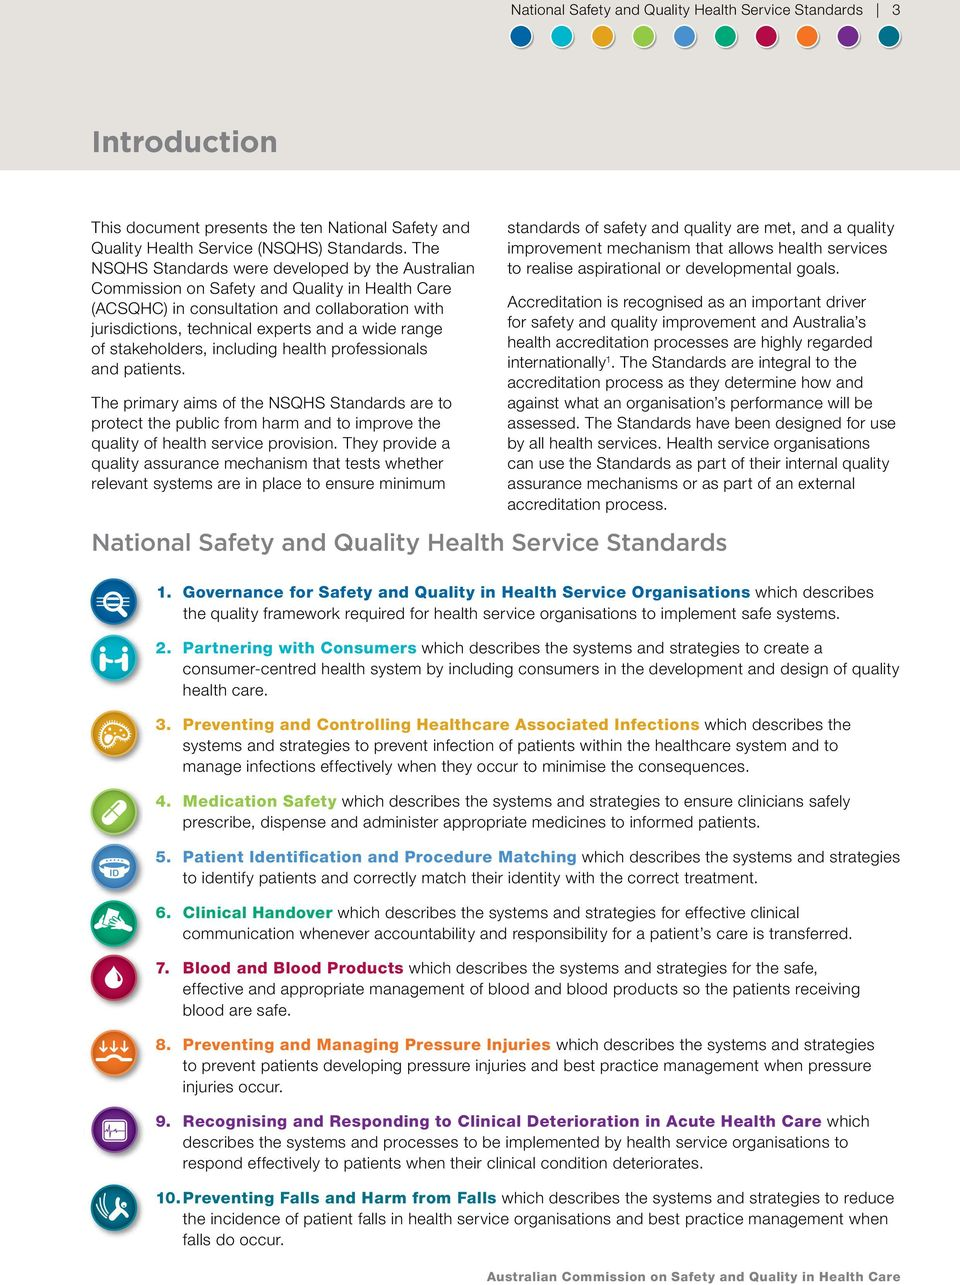 of stakeholders, including health professionals and patients. The primary aims of the NSQHS Standards are to protect the public from harm and to improve the quality of health service provision.